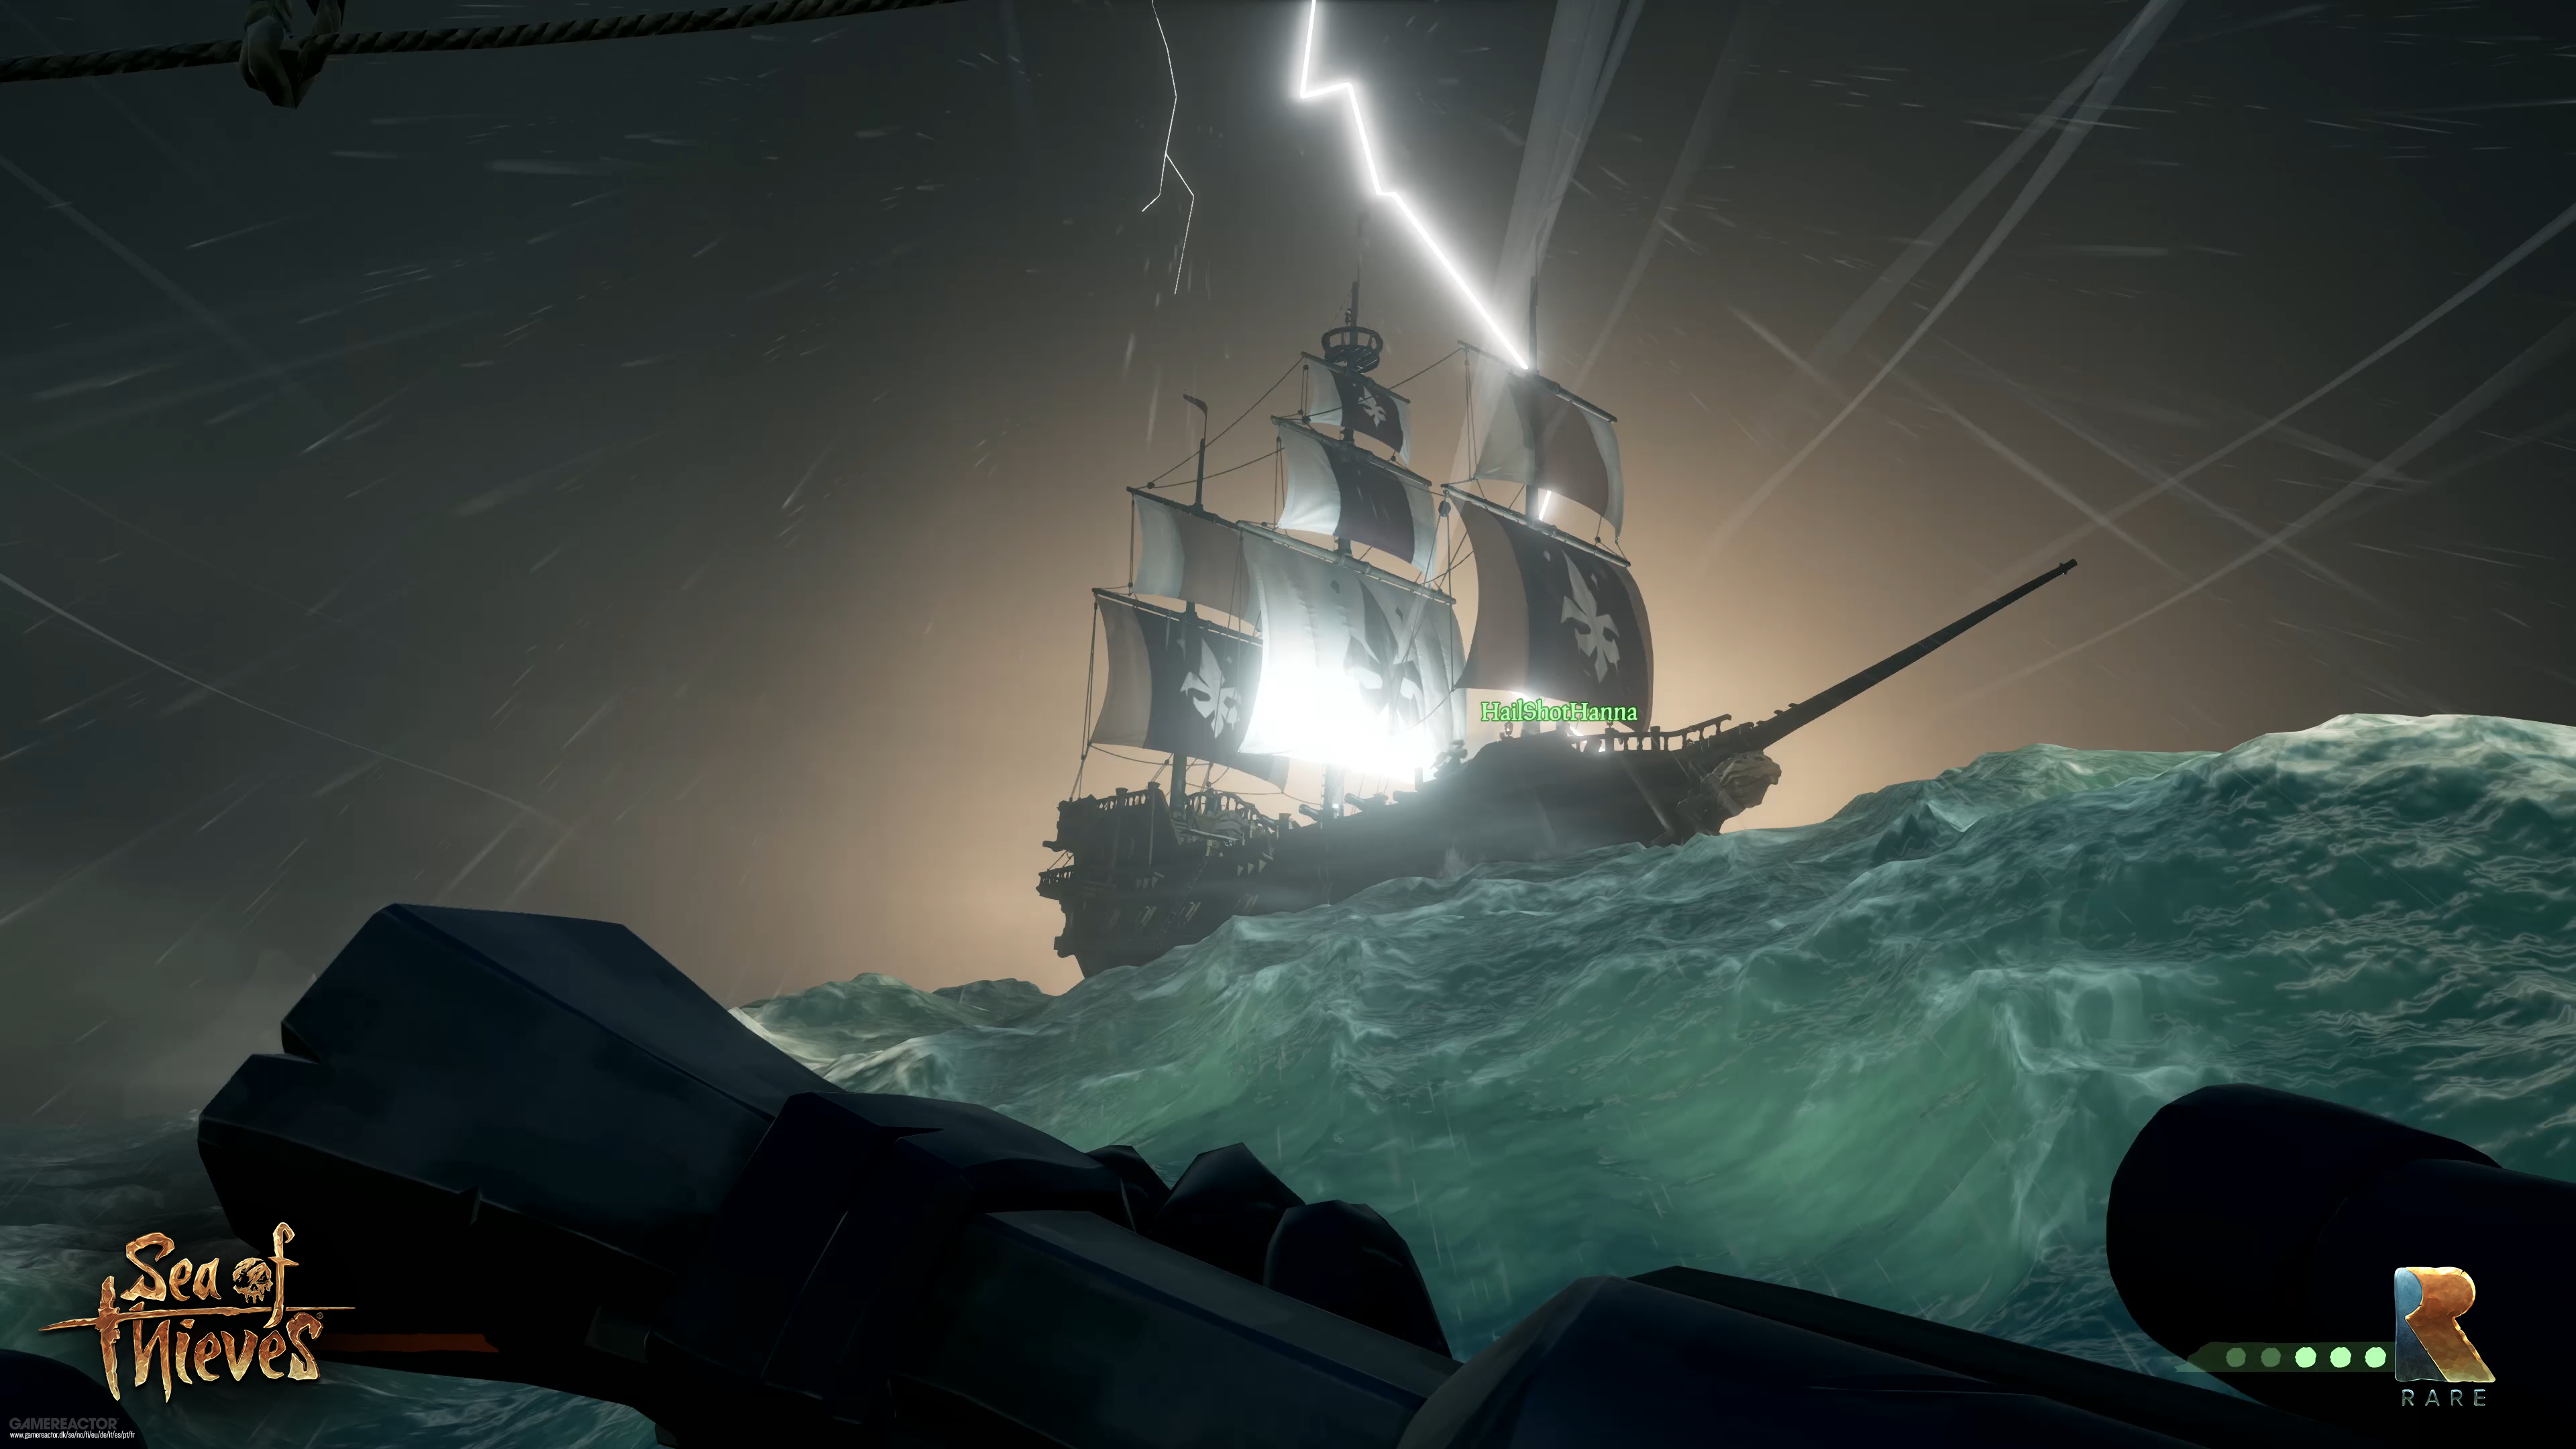 Sea Of Thieves Wallpaper In 1920x1080